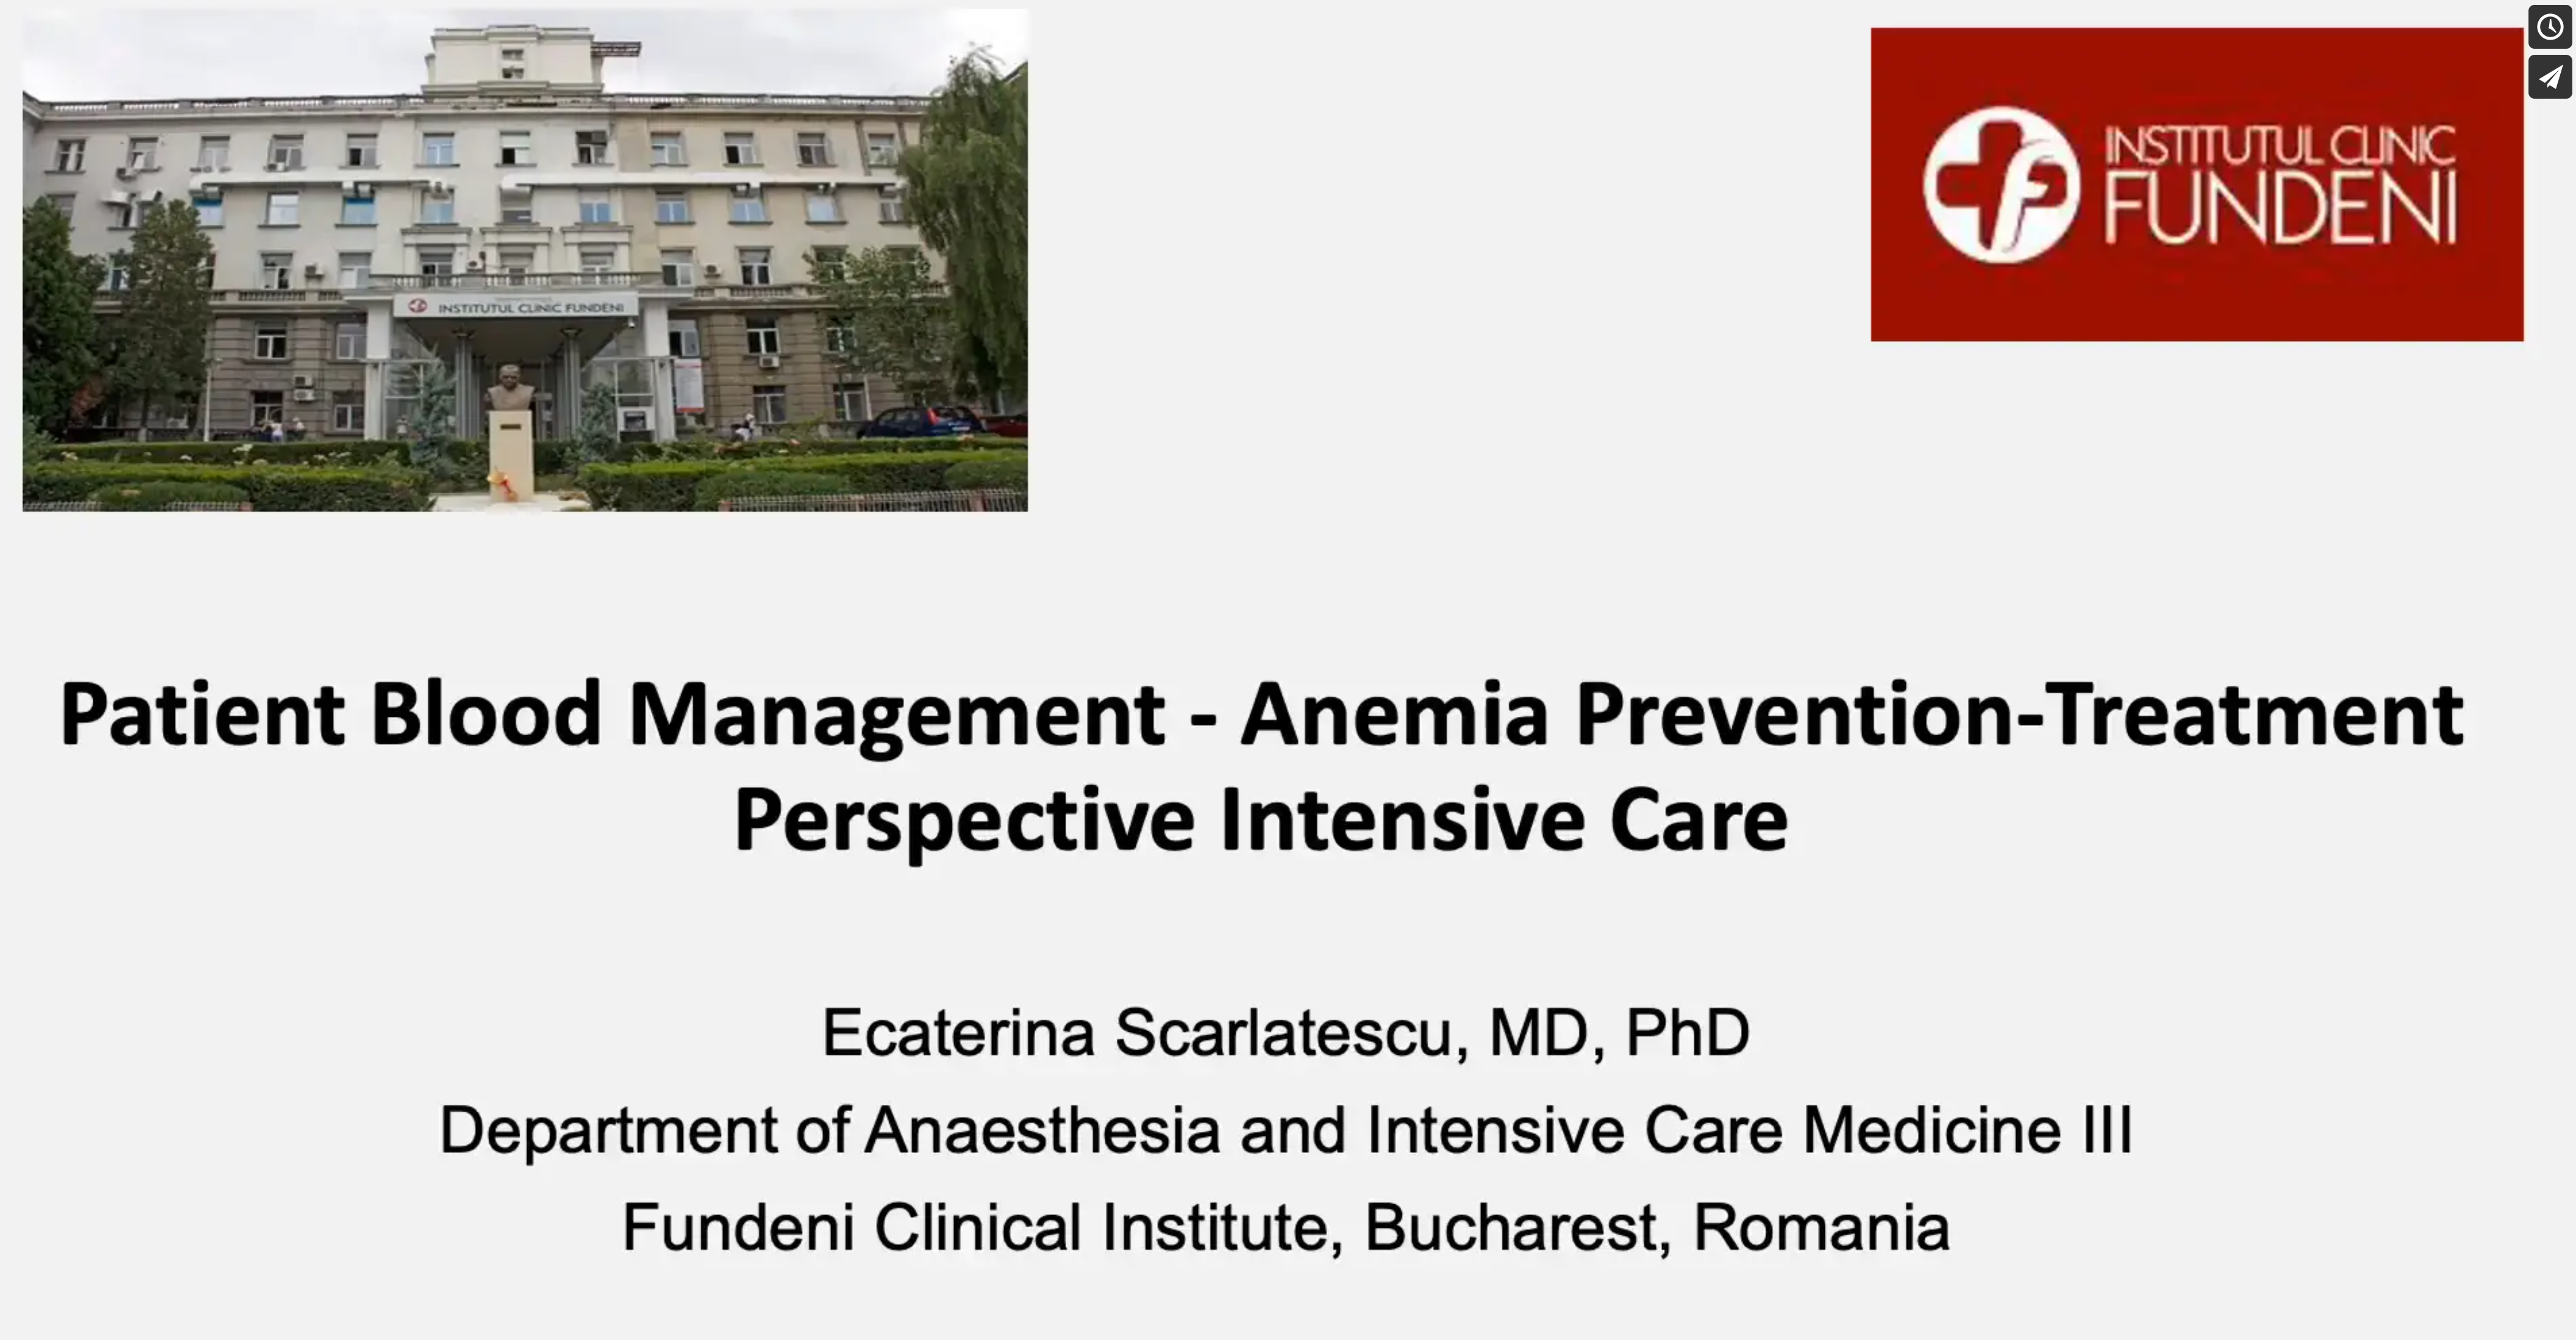 Anemia Prevention - treatment perspective ICU Katy